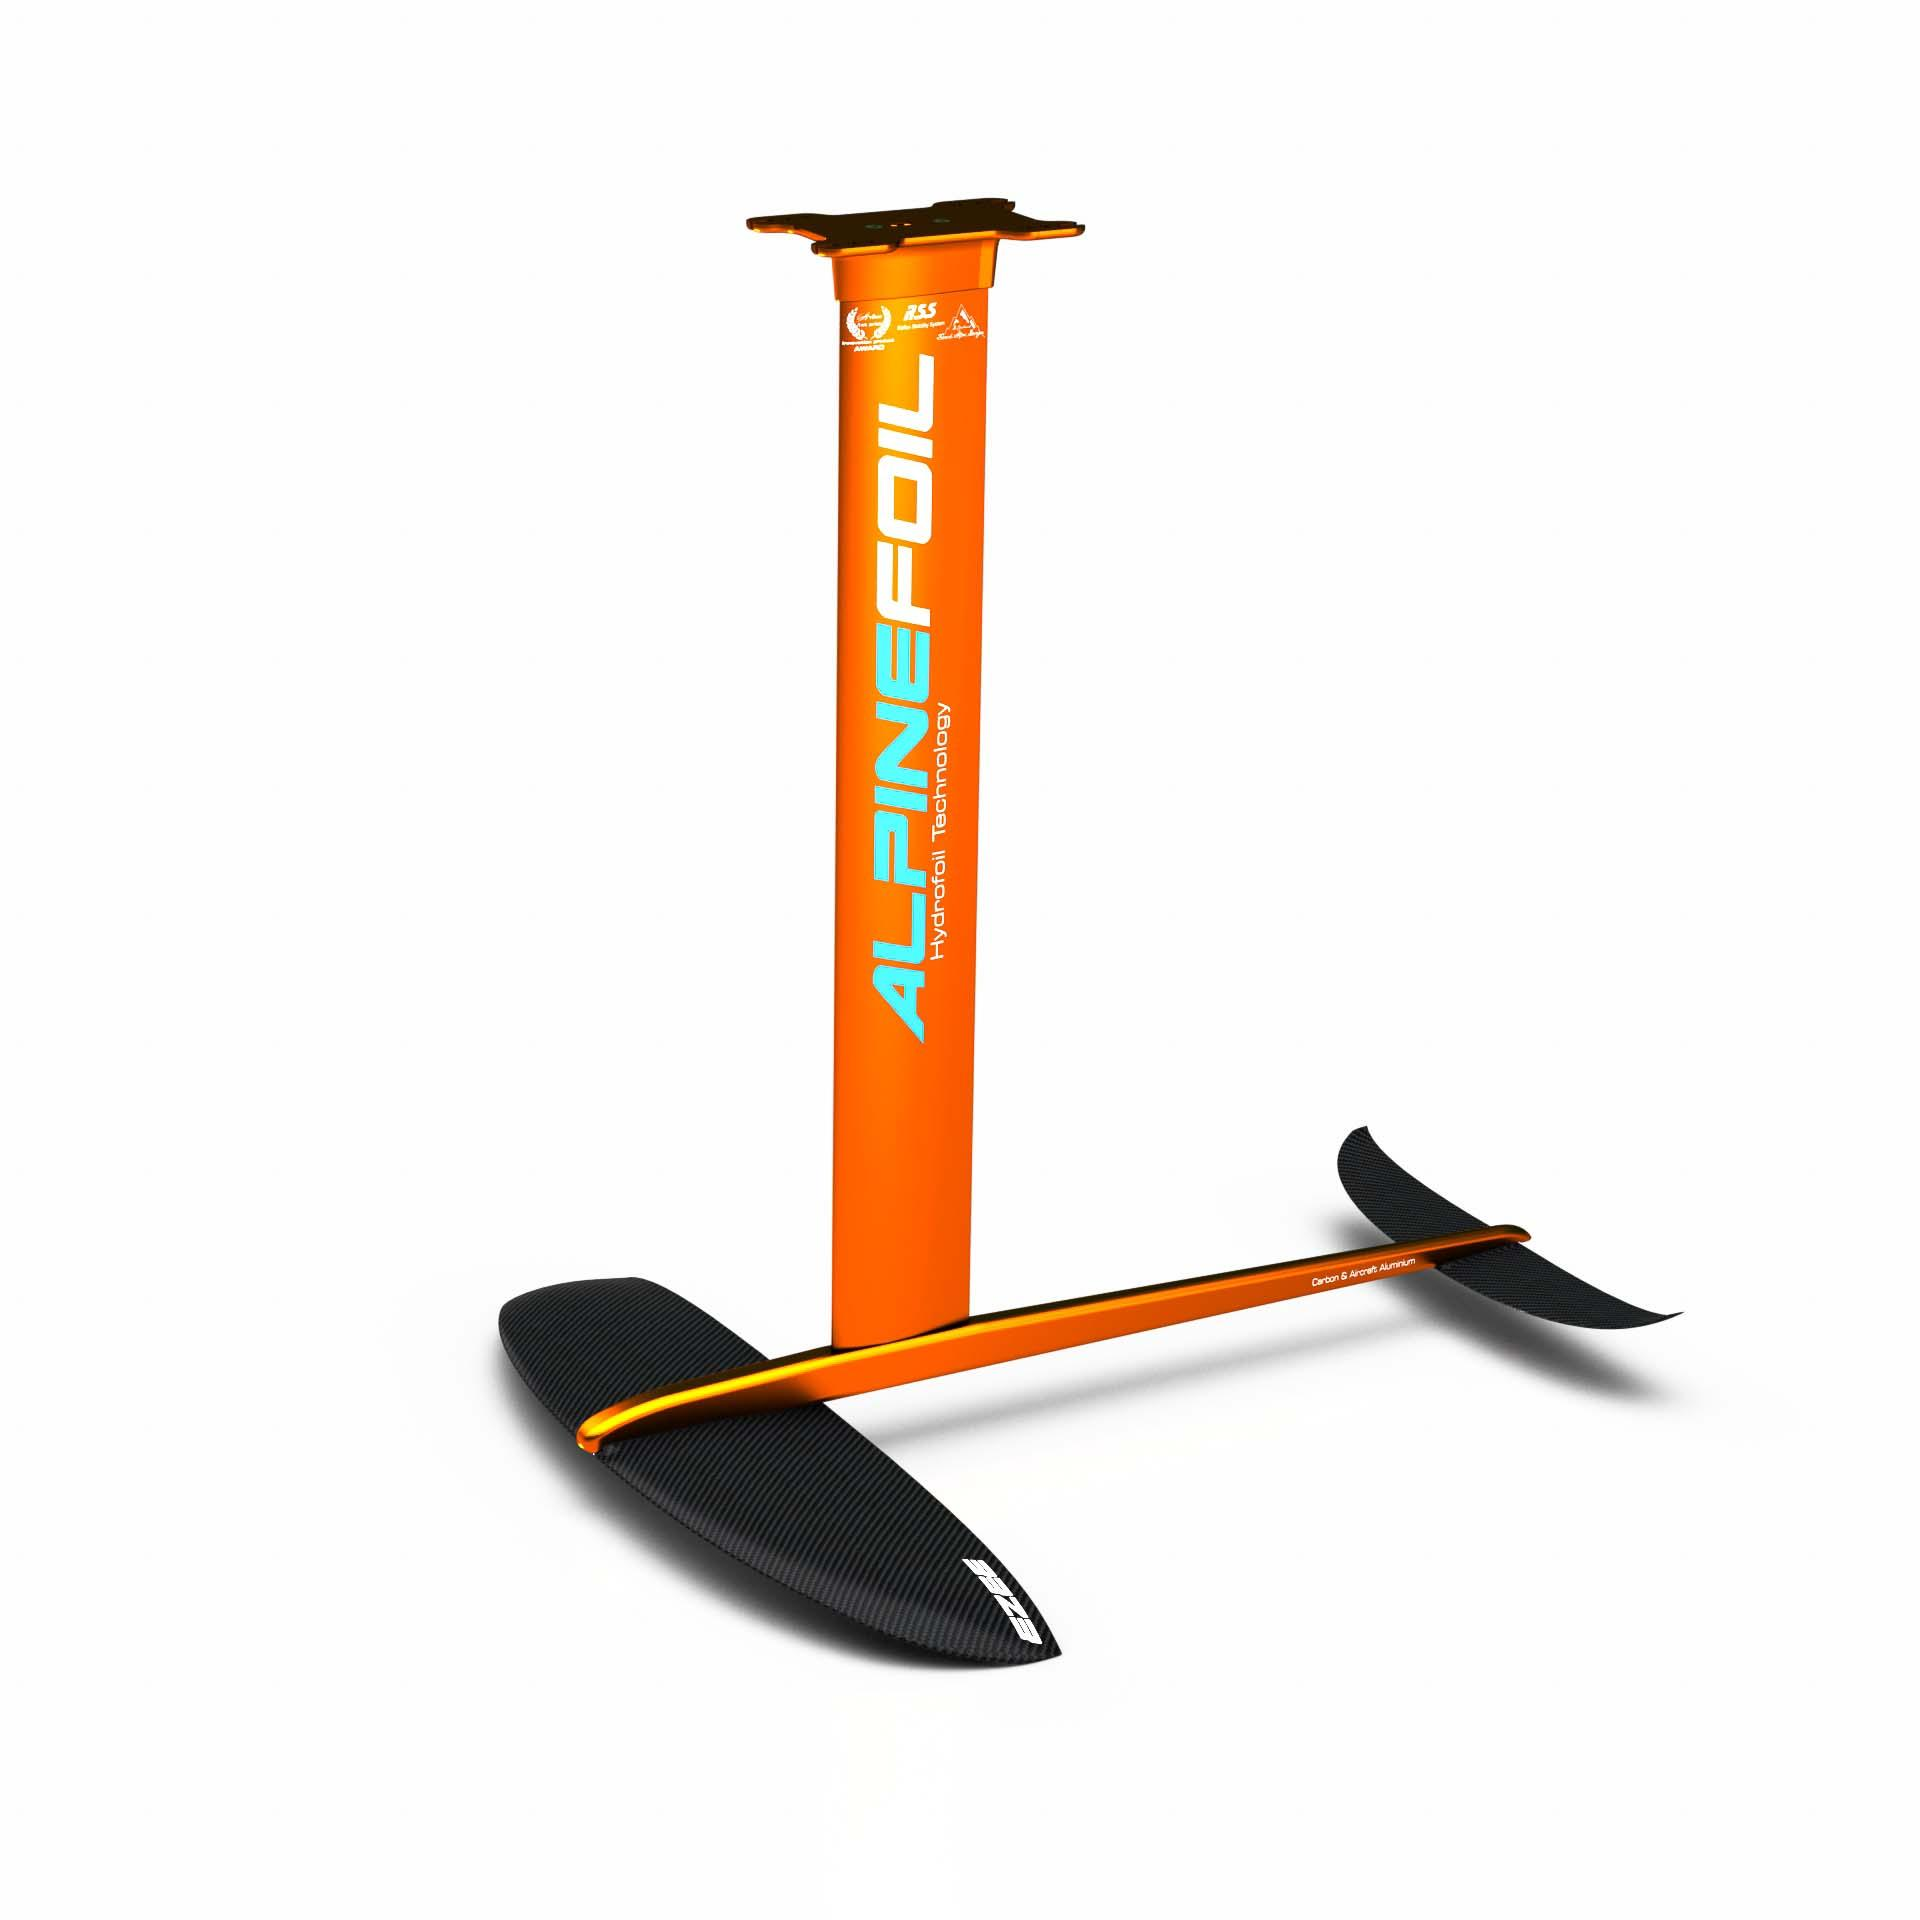 Kitefoil EZEE - carbon Wings - 699 euros